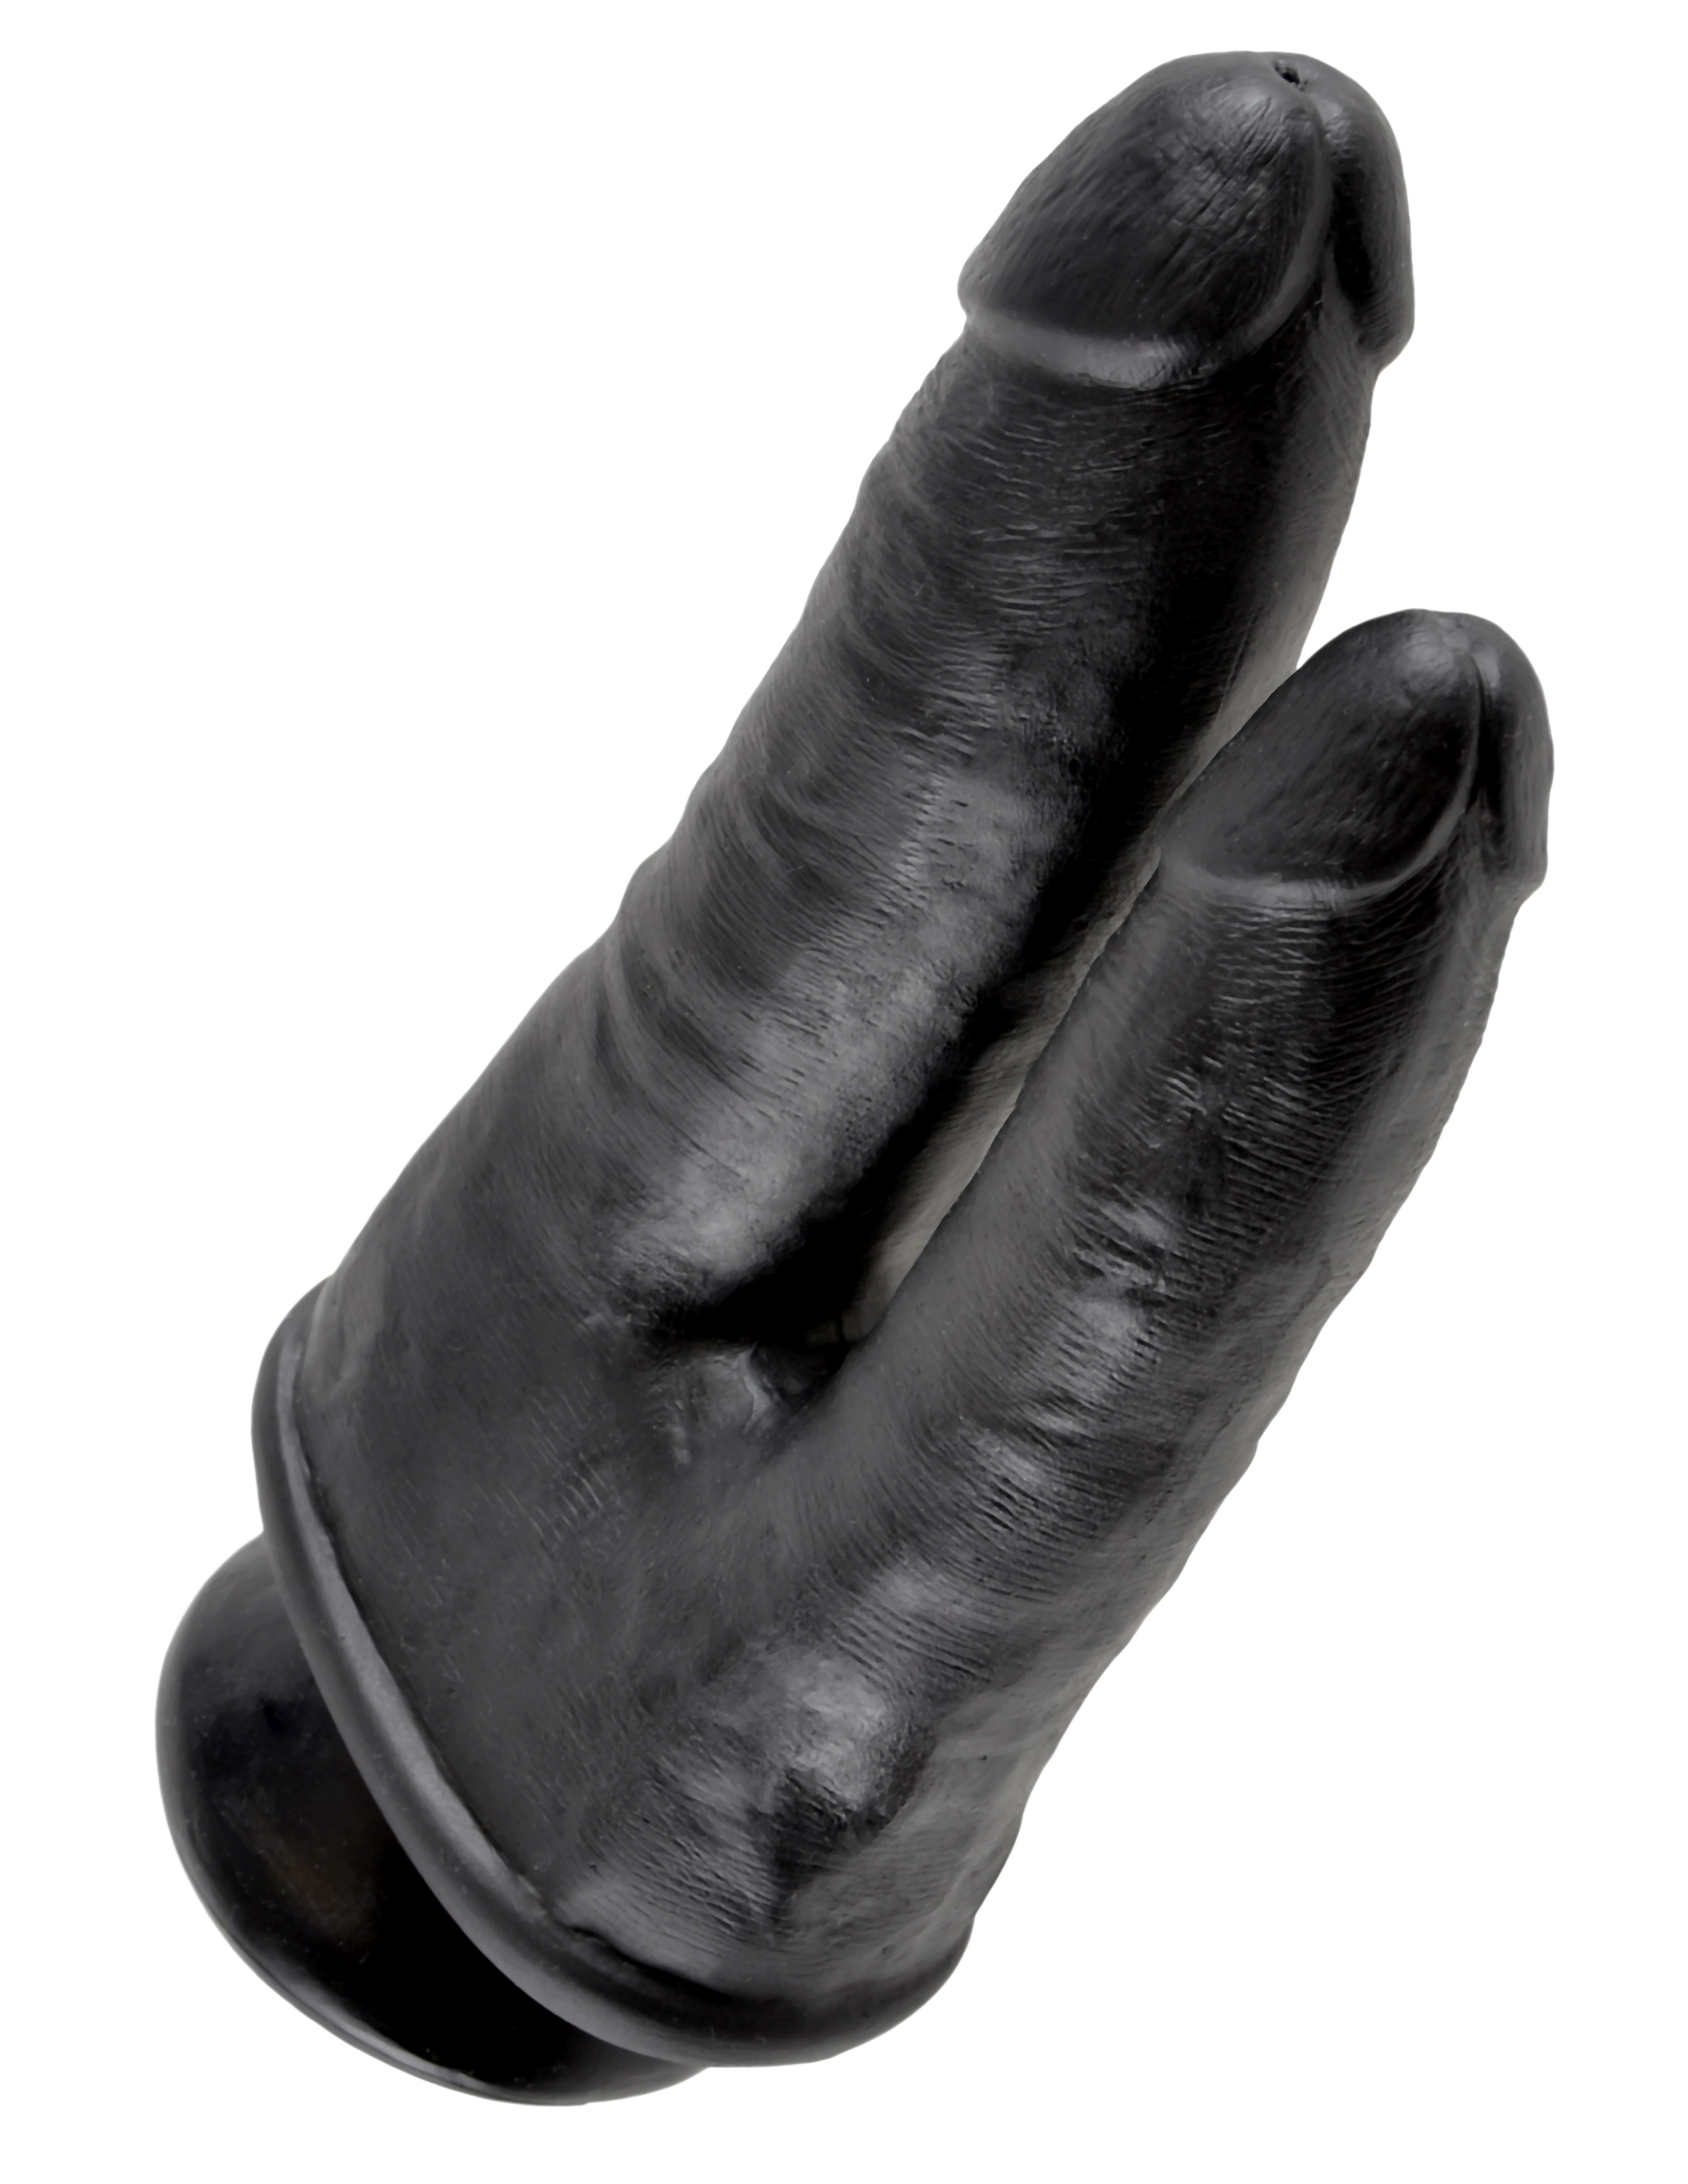 KING COCK DOUBLE PENETRATOR BLACK